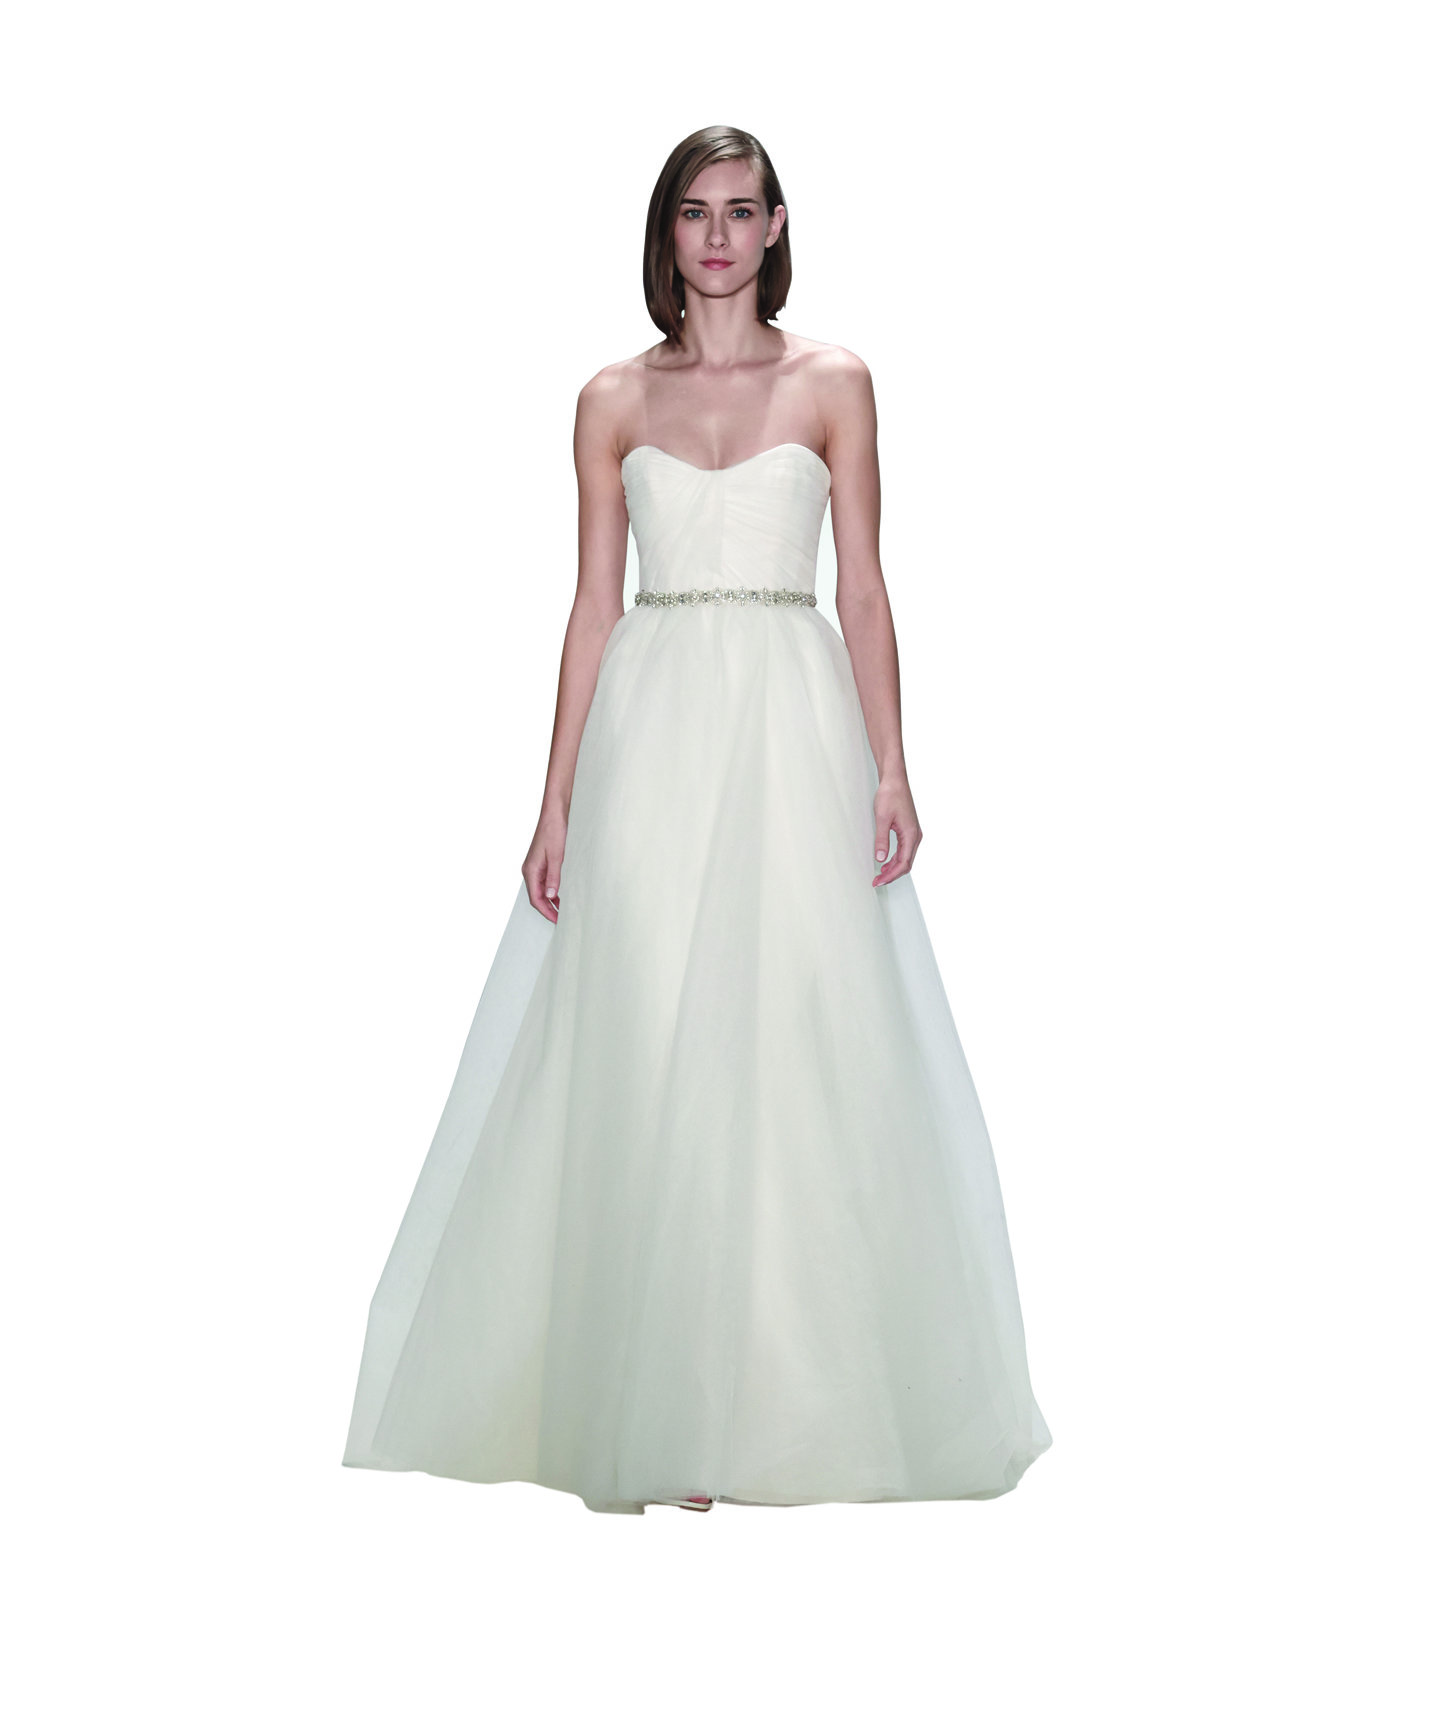 Amsale piper stunning off the rack wedding dresses for Real simple wedding dresses